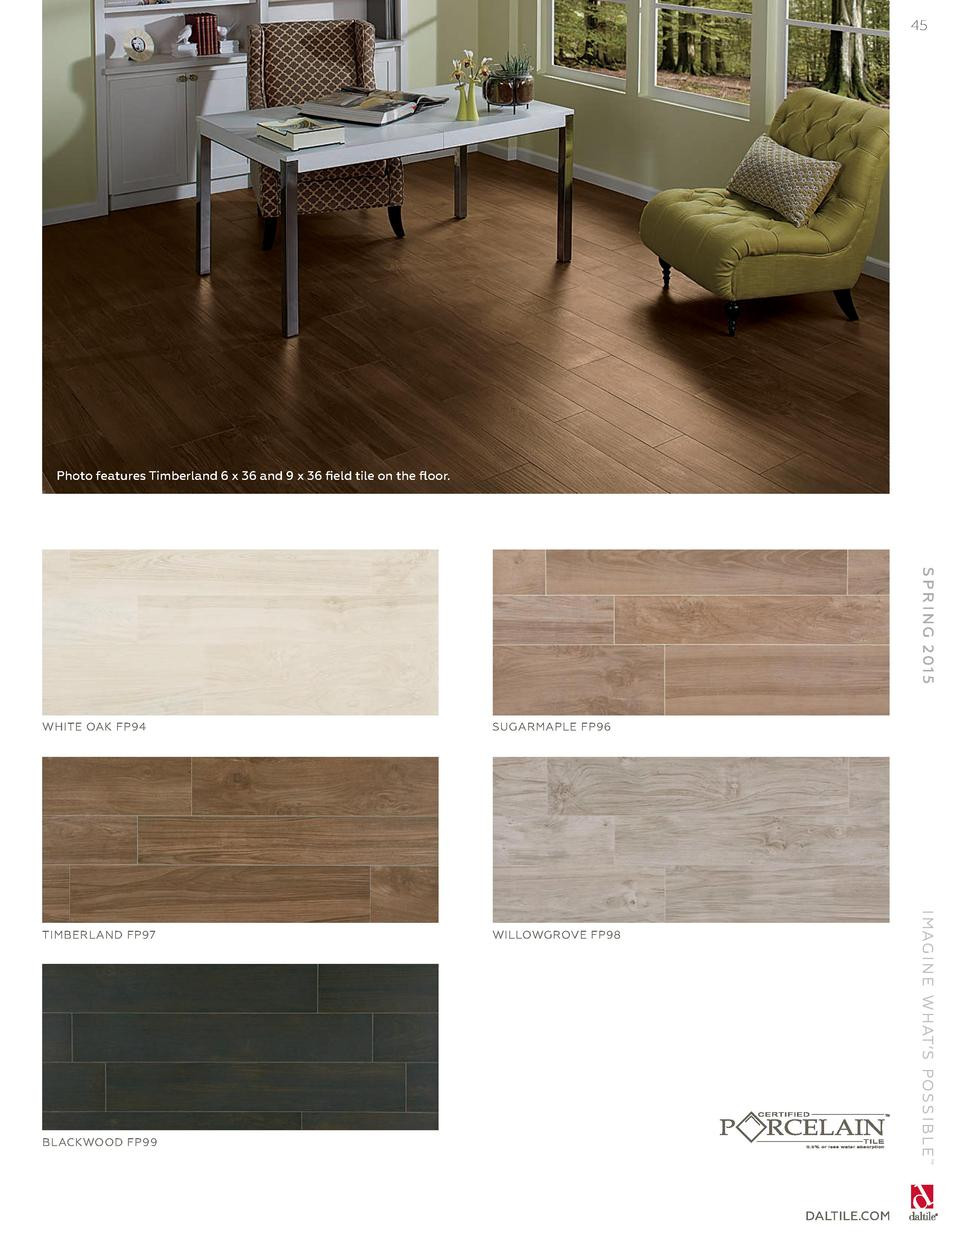 speckled elm hardwood flooring of daltile spring 2015 catalog simplebooklet com within 45 photo features timberland 6 x 36 and 9 x 36 field tile on the floor